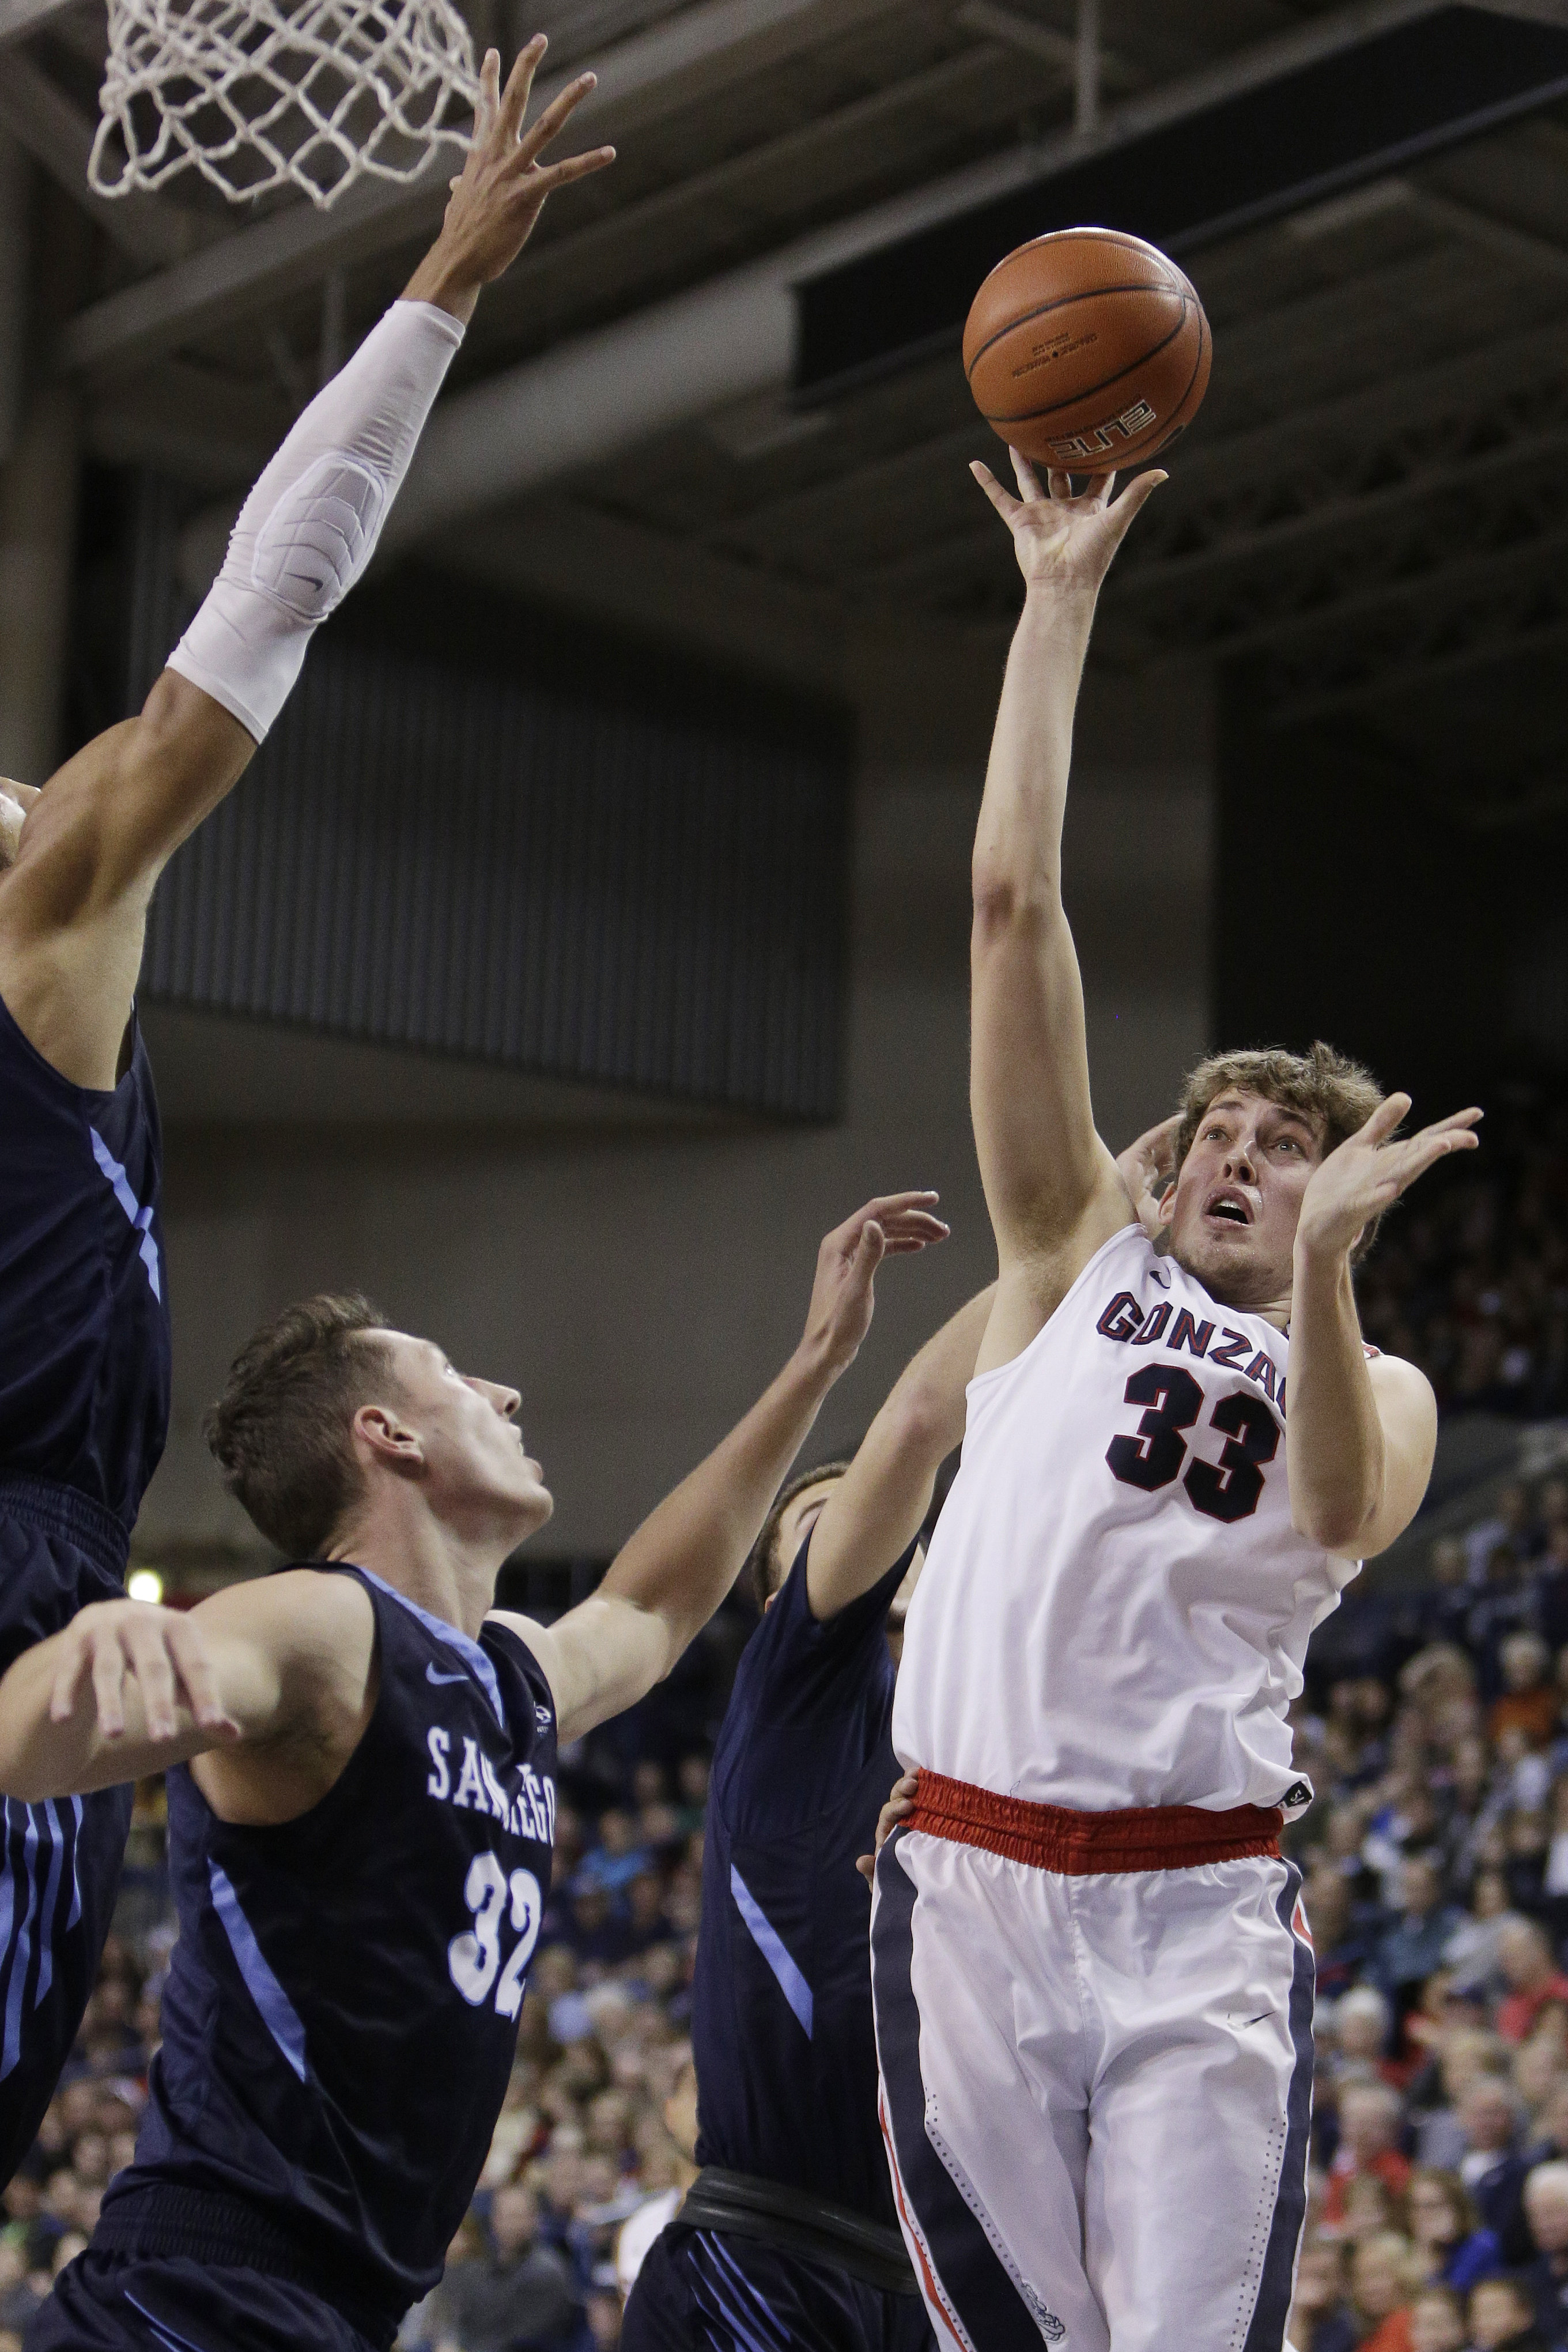 Gonzaga's Kyle Wiltjer (33) shoots against San Diego's Brett Bailey (32), Jito Kok, left, and Tyler Williams during the first half of an NCAA college basketball game, Saturday, Jan. 16, 2016, in Spokane, Wash. (AP Photo/Young Kwak)